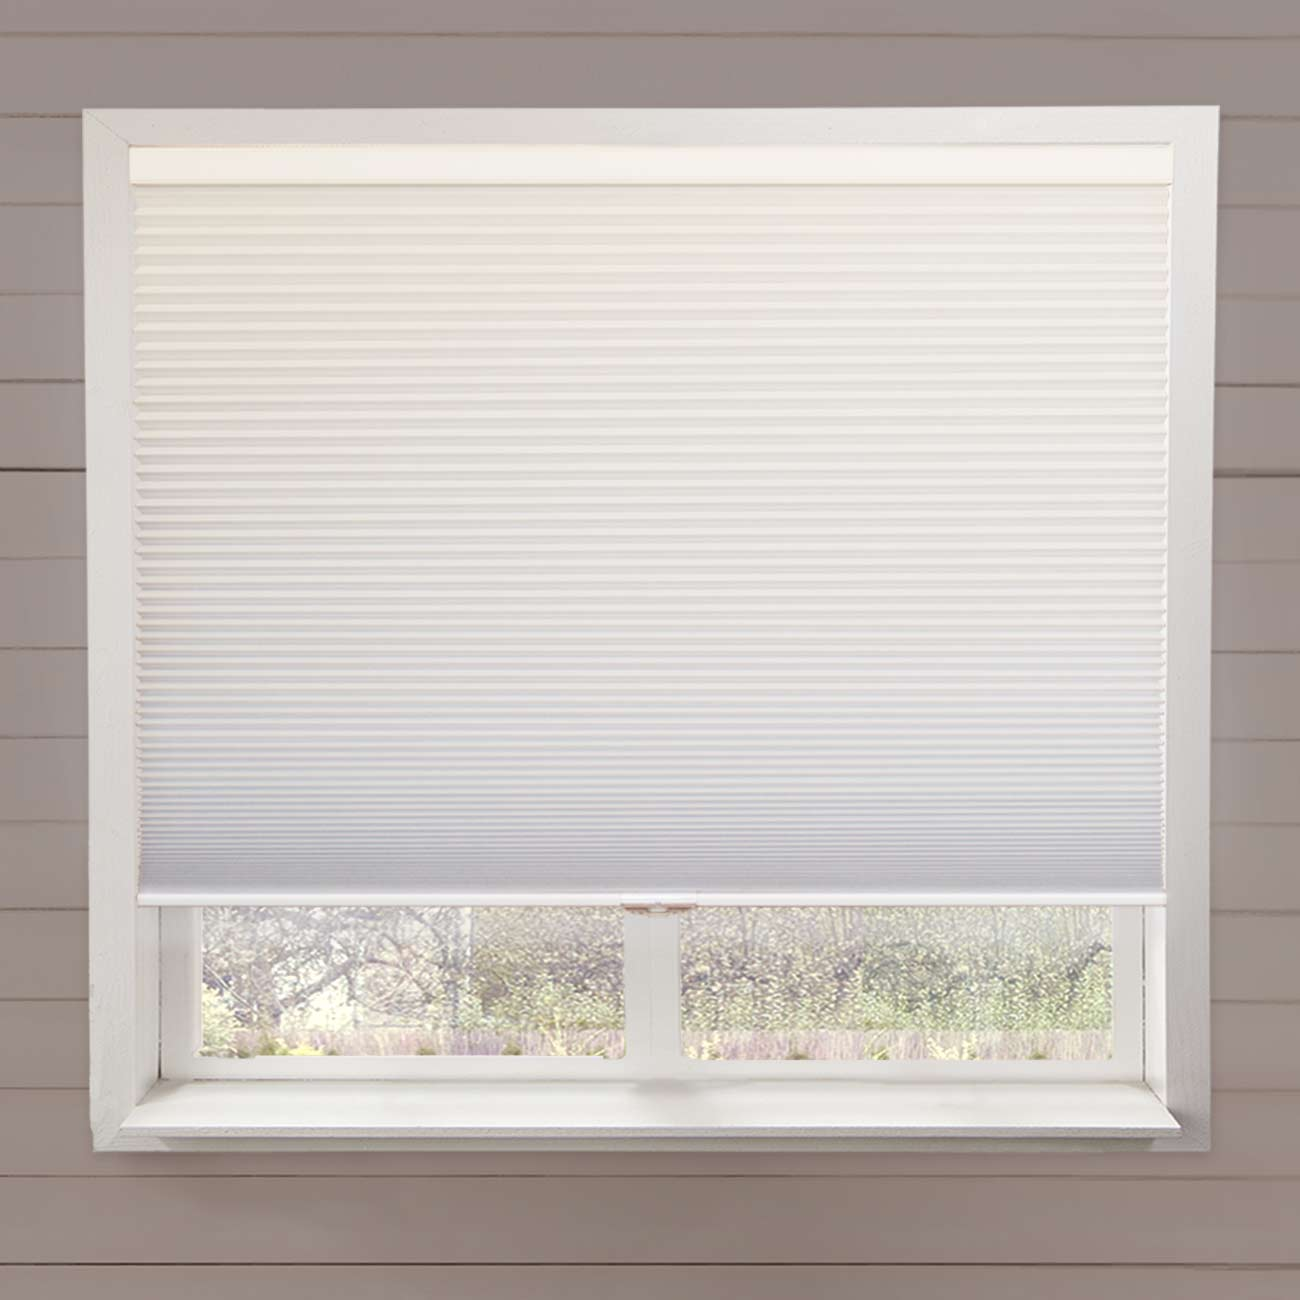 Chicology Cordless Cellular Shade, Privacy Single Cell Window Blinds